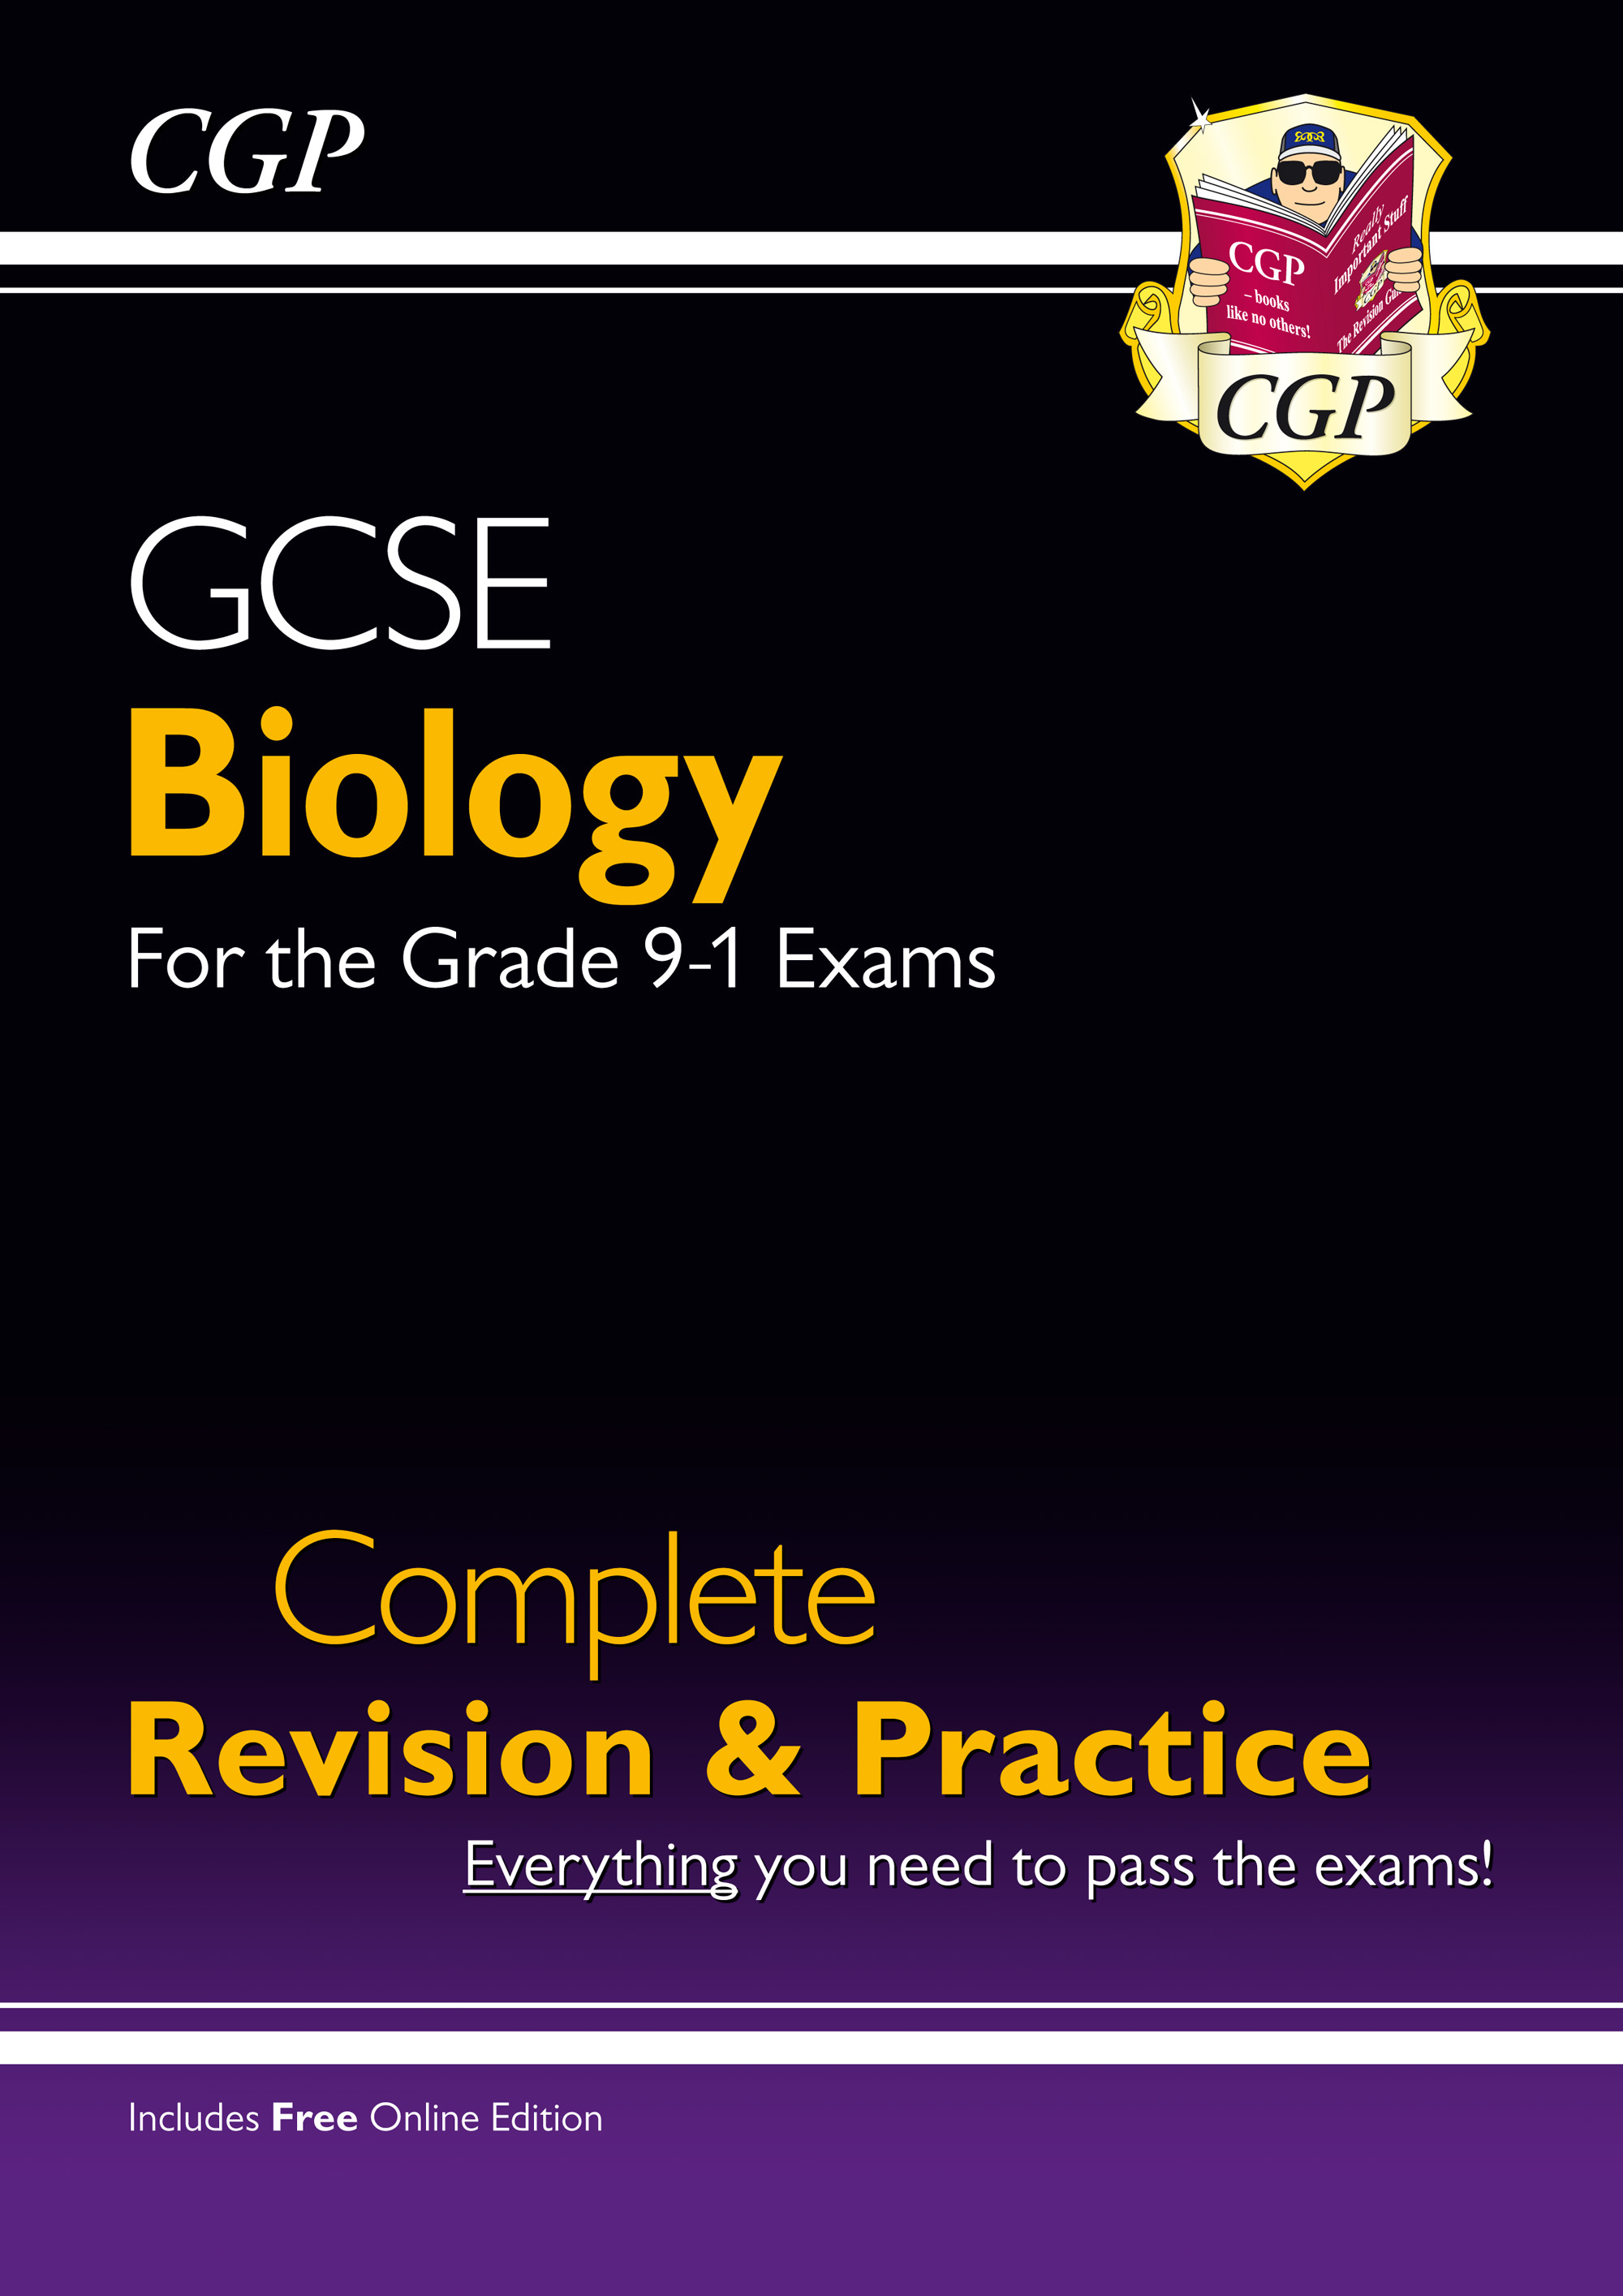 BHS45 - New Grade 9-1 GCSE Biology Complete Revision & Practice with Online Edition